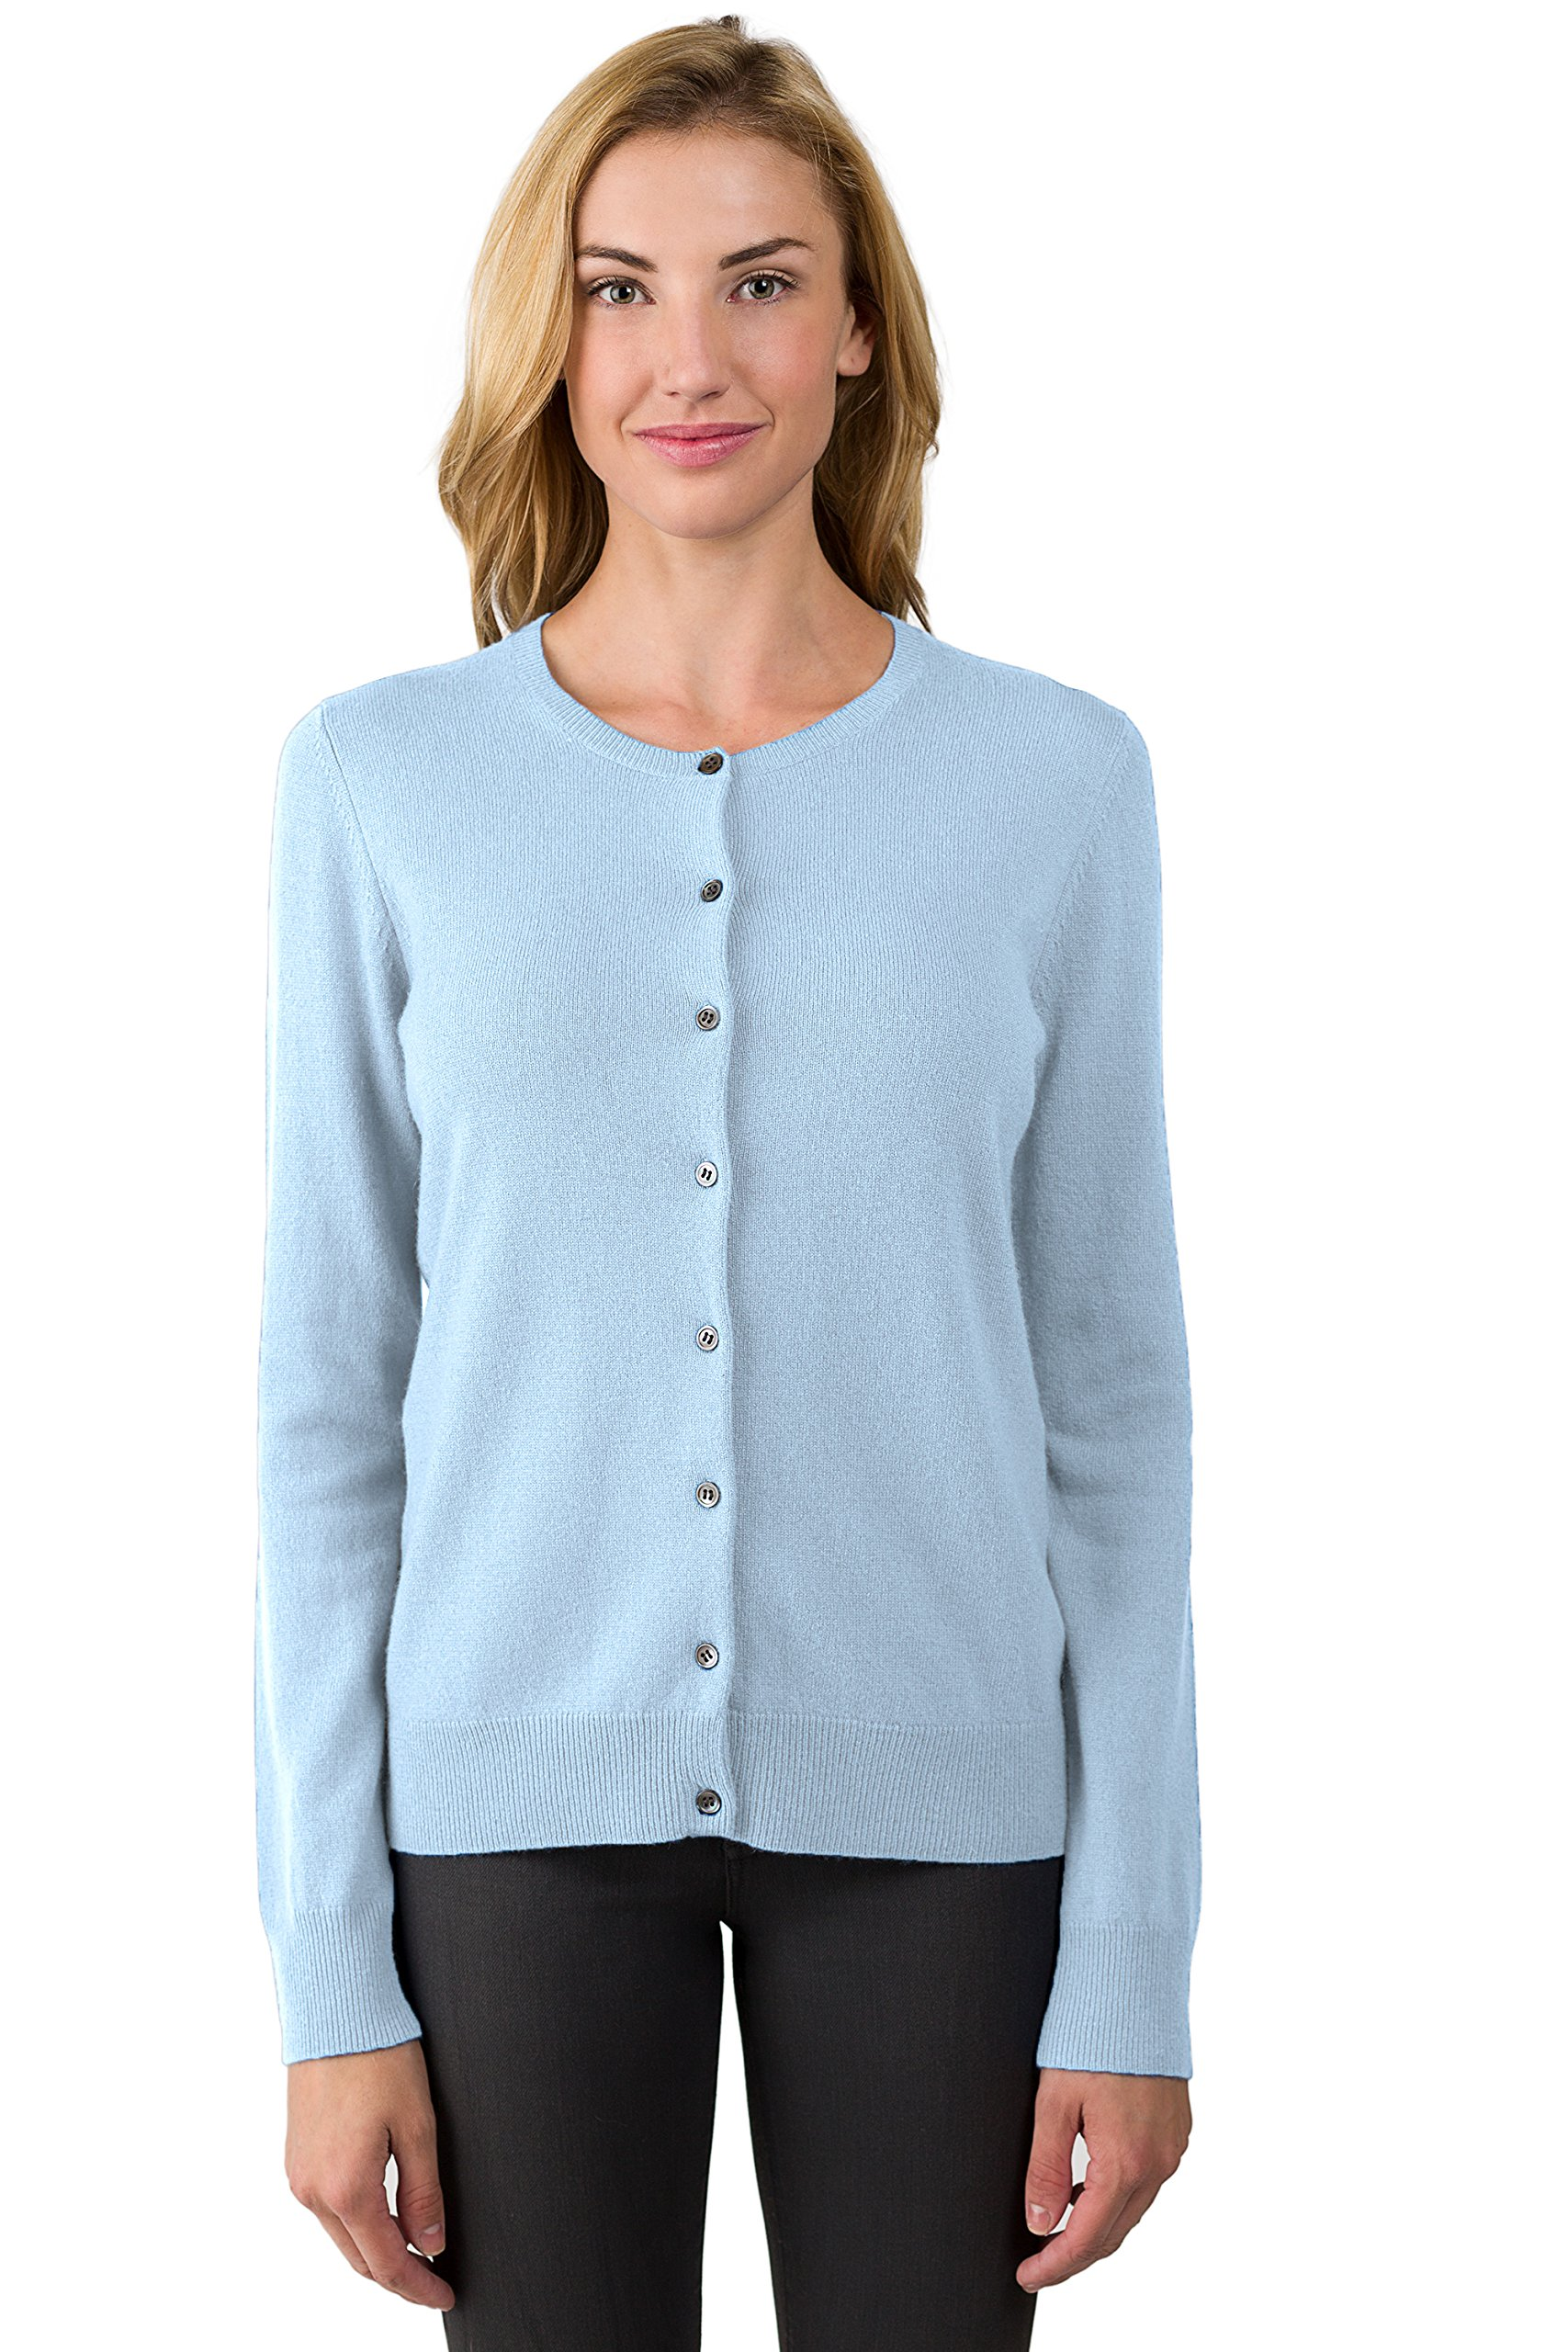 JENNIE LIU Women's 100% Cashmere Button Front Long Sleeve Crewneck Cardigan Sweater (M, Sky)